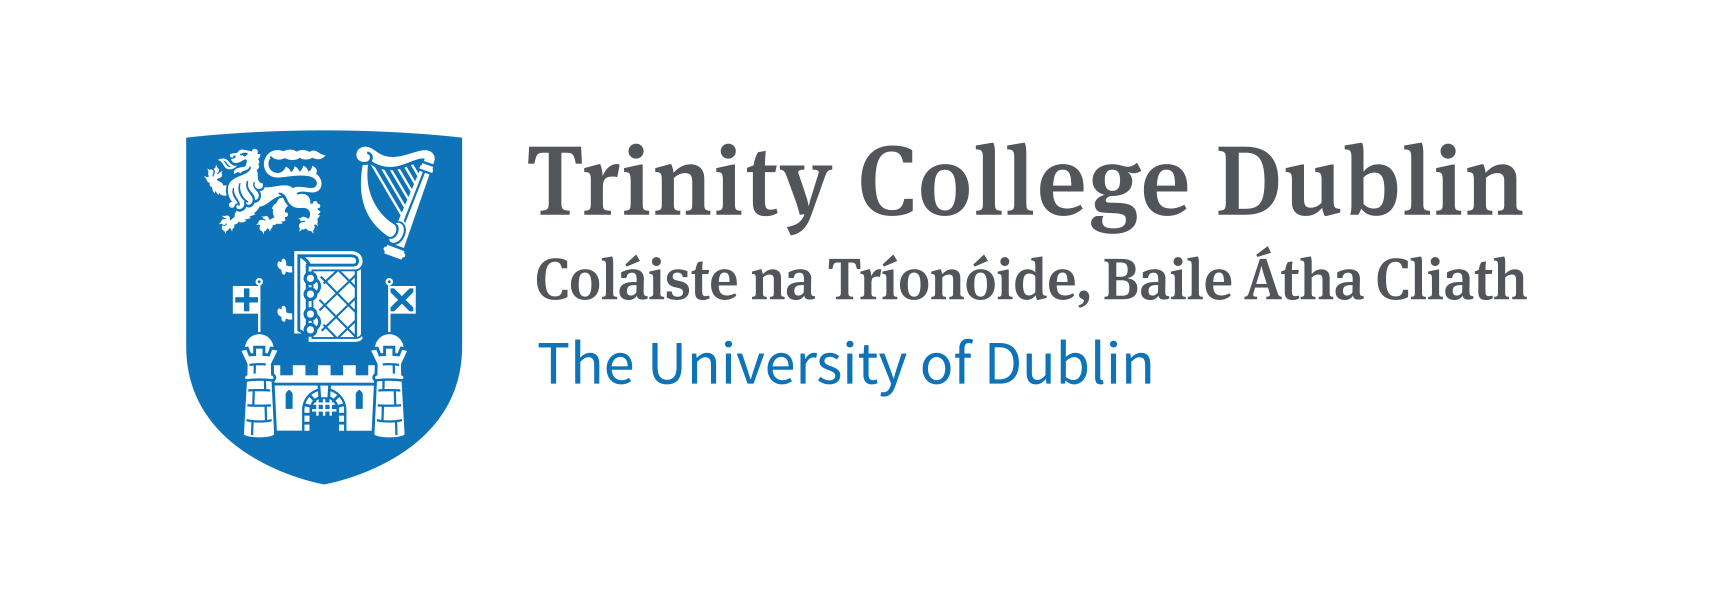 Trinity College Dublin /ADAPT hires one software architect/product manager and one software engineer to spin-out a business start-up in the field of recommender systems and machine learning.